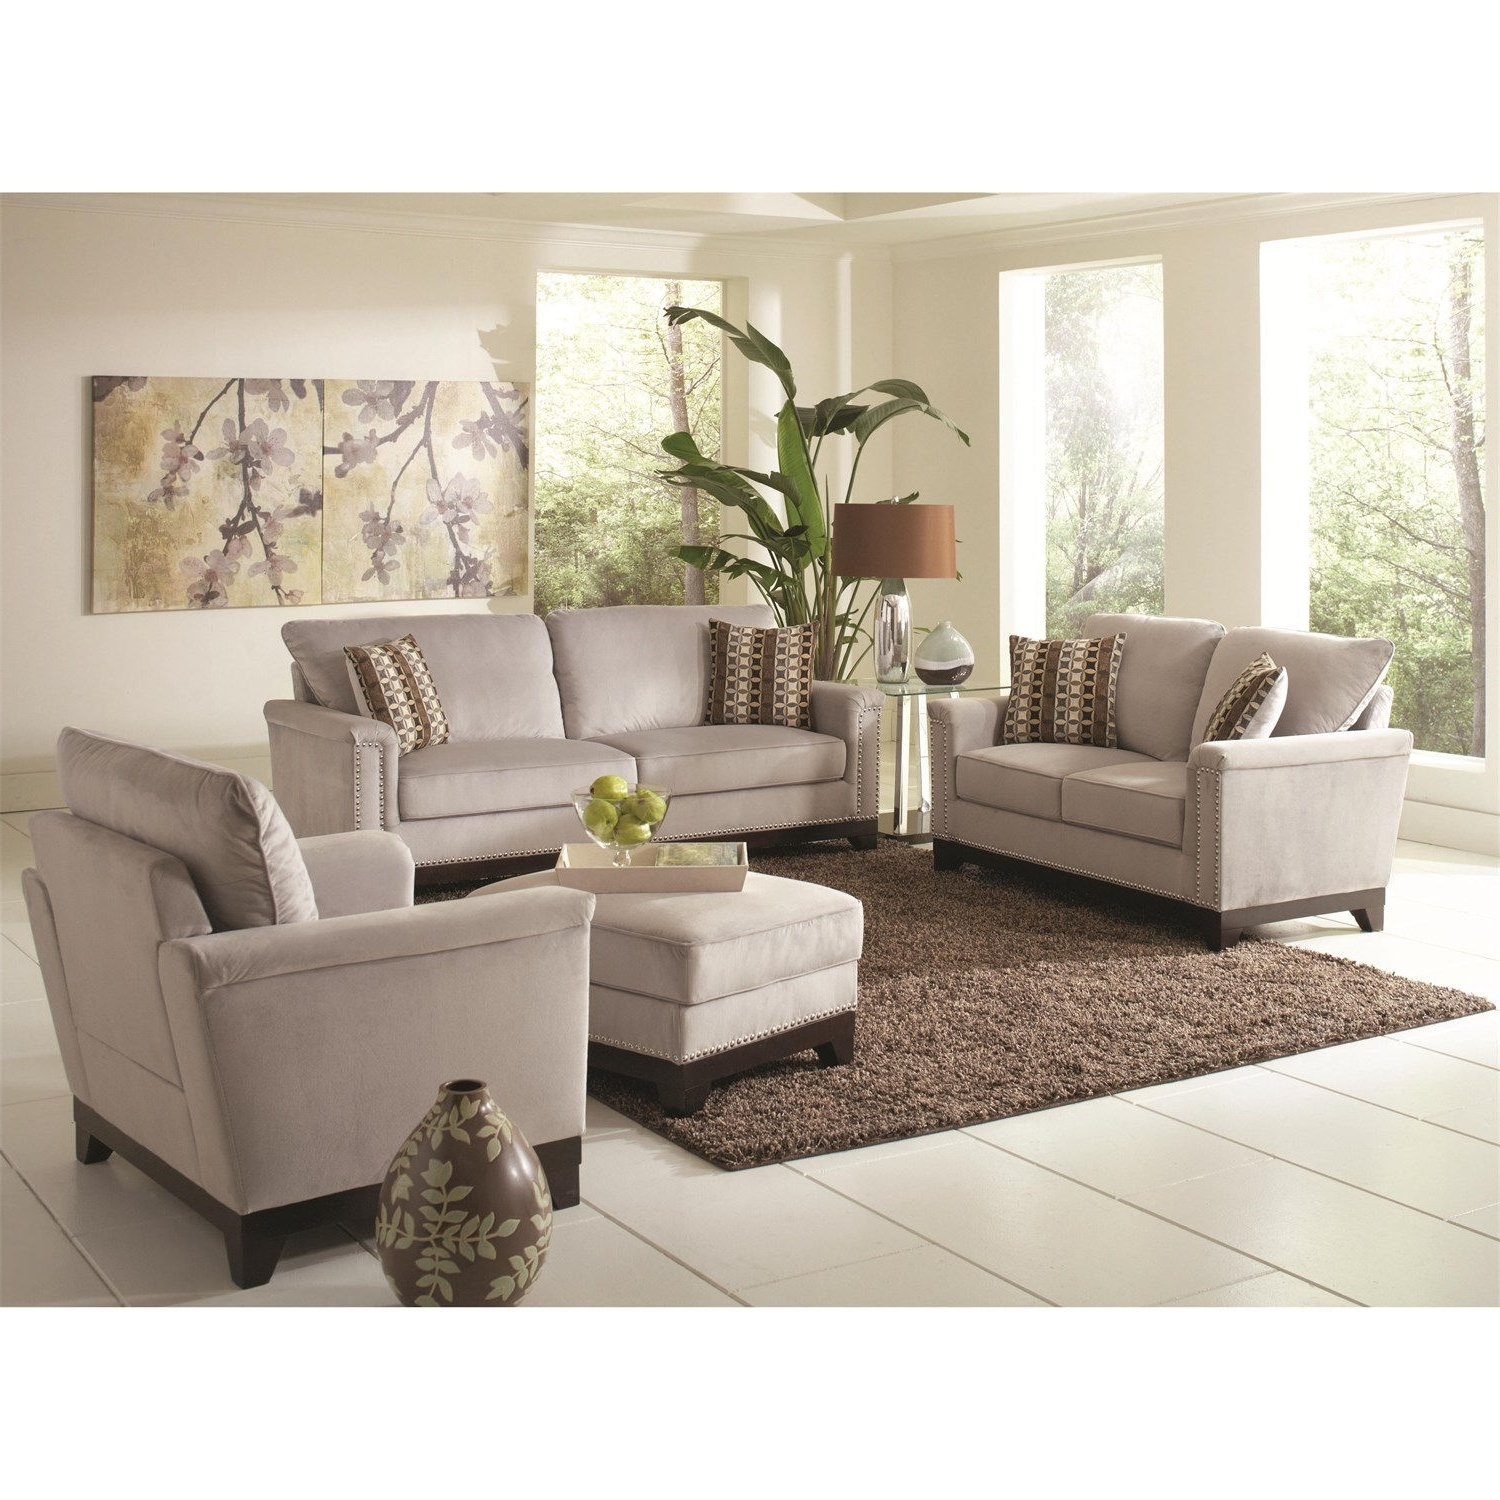 Furniture : Tufted Leather Sofa Brown Sofa Bed On Sale Edmonton Throughout Most Recent Ottawa Sale Sectional Sofas (View 2 of 15)